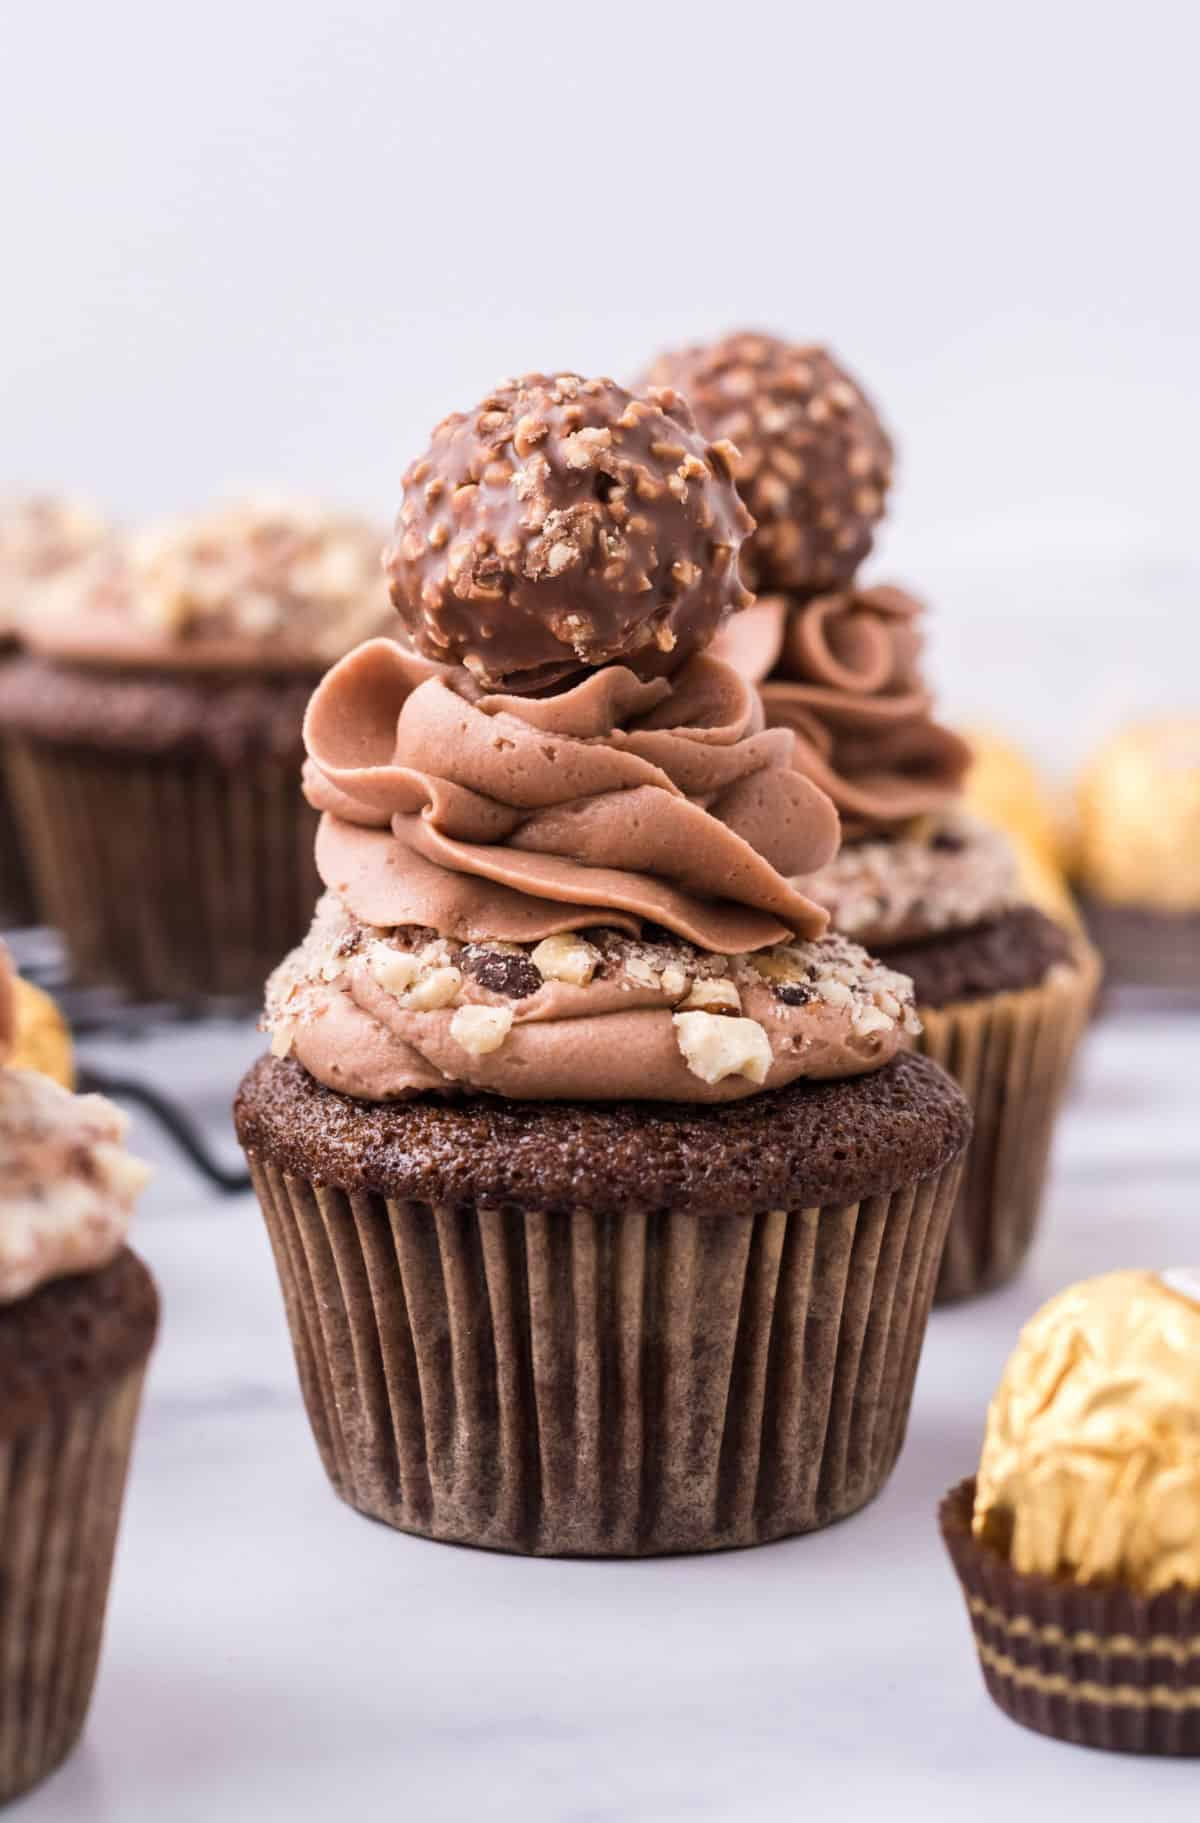 Ferrero rocher topped chocolate cupcake with chocolate frosting.